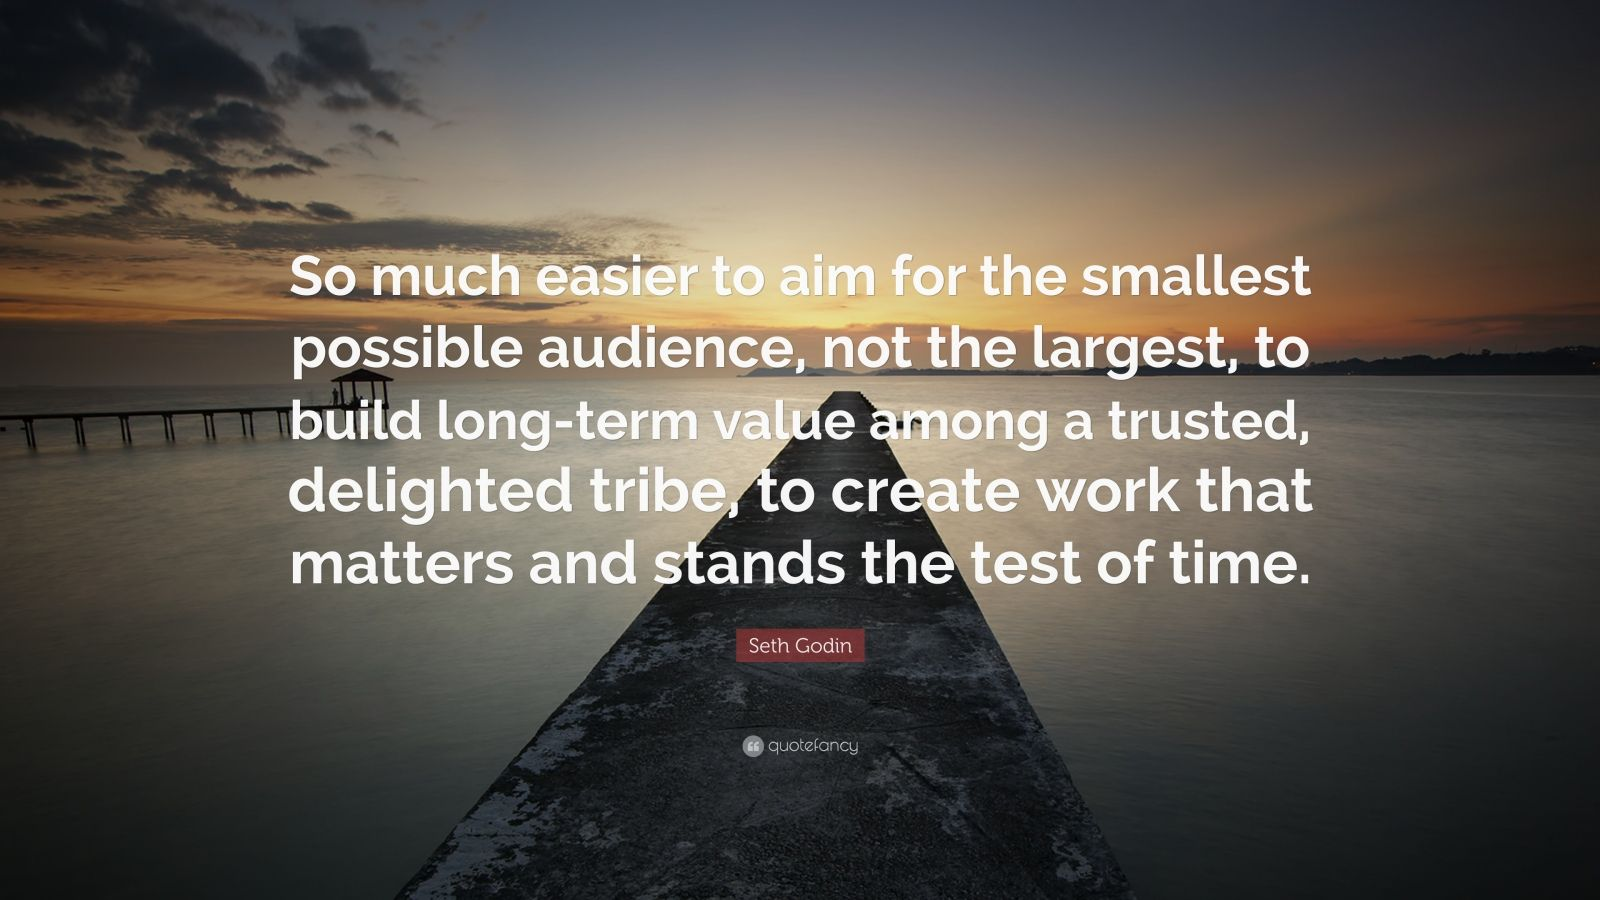 """Seth Godin Quote: """"So much easier to aim for the smallest possible audience, not the largest, to build long-term value among a trusted, delighted tribe, to create work that matters and stands the test of time."""""""